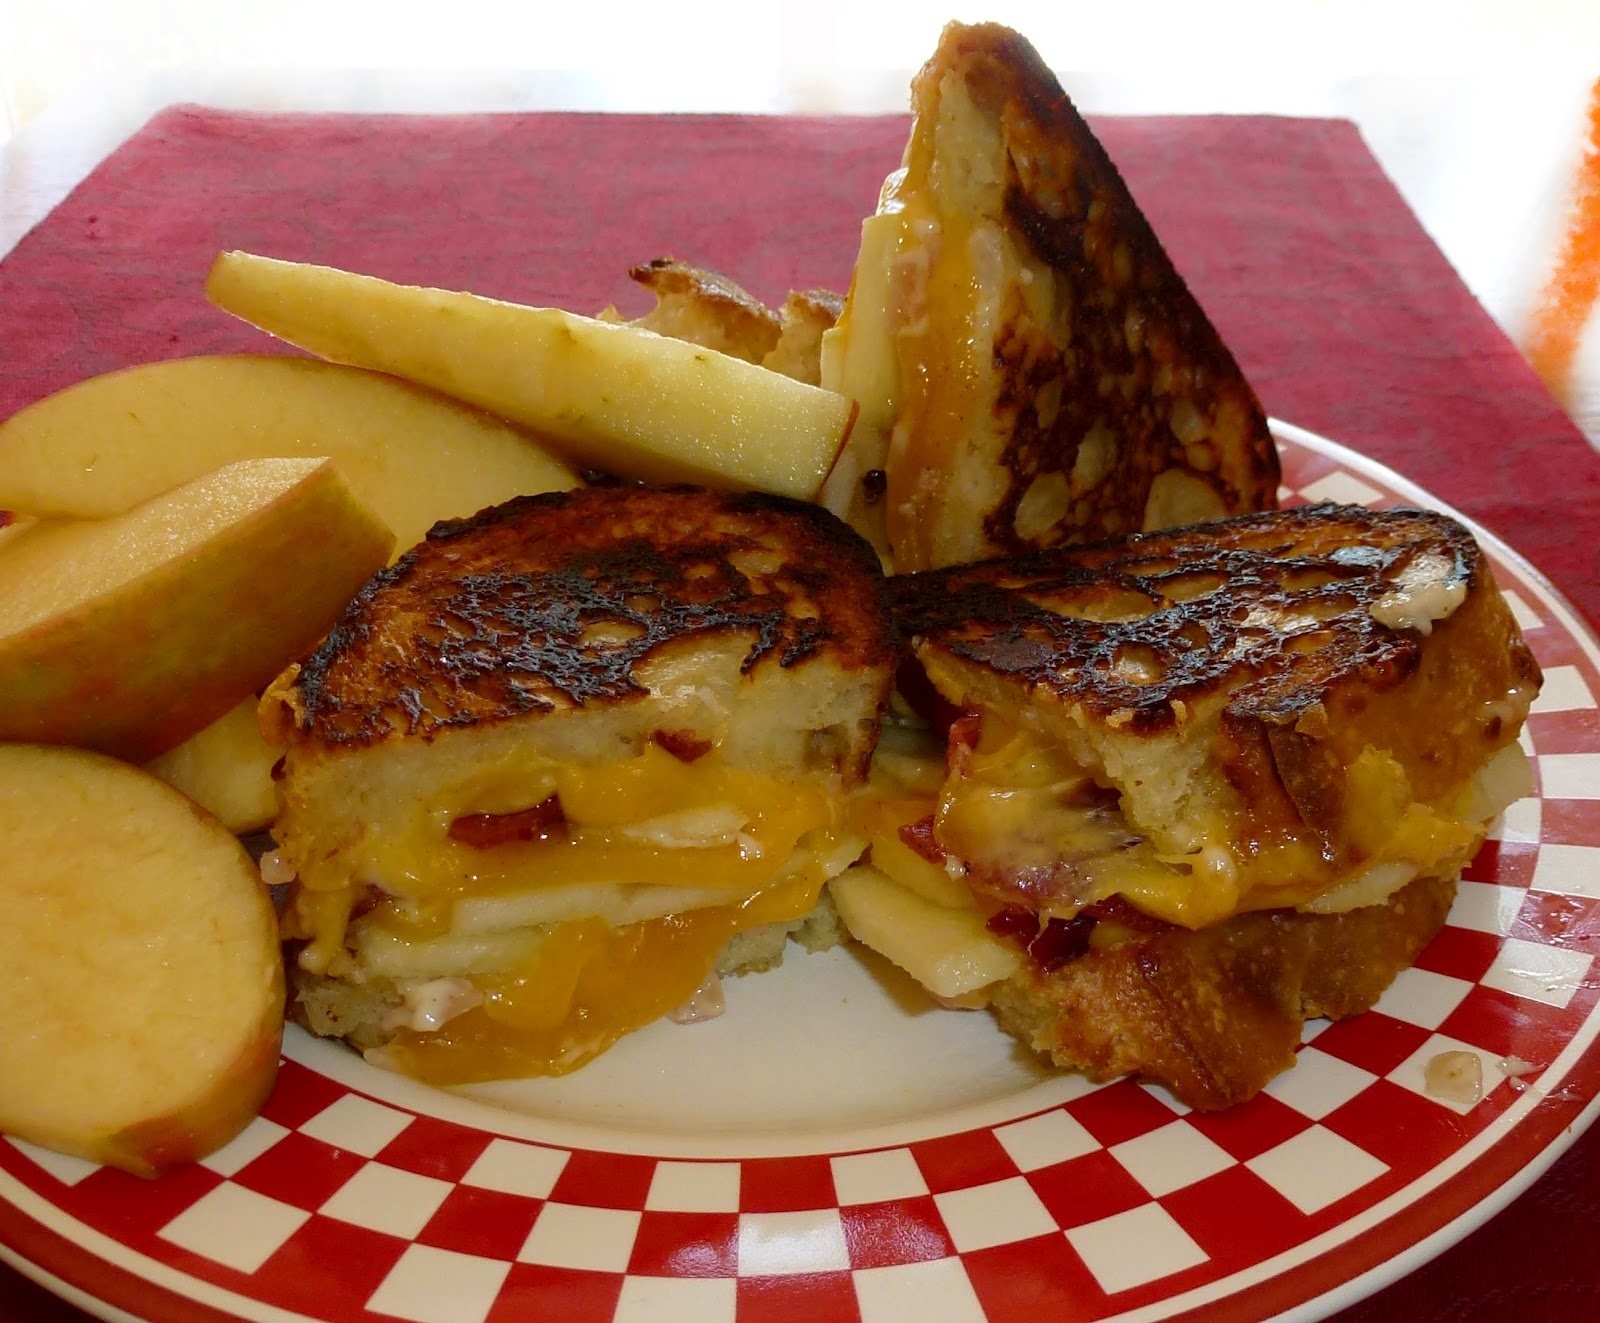 Savory Table: Grilled Apple-Bacon-Cheddar Sandwich with Roasted Red ...